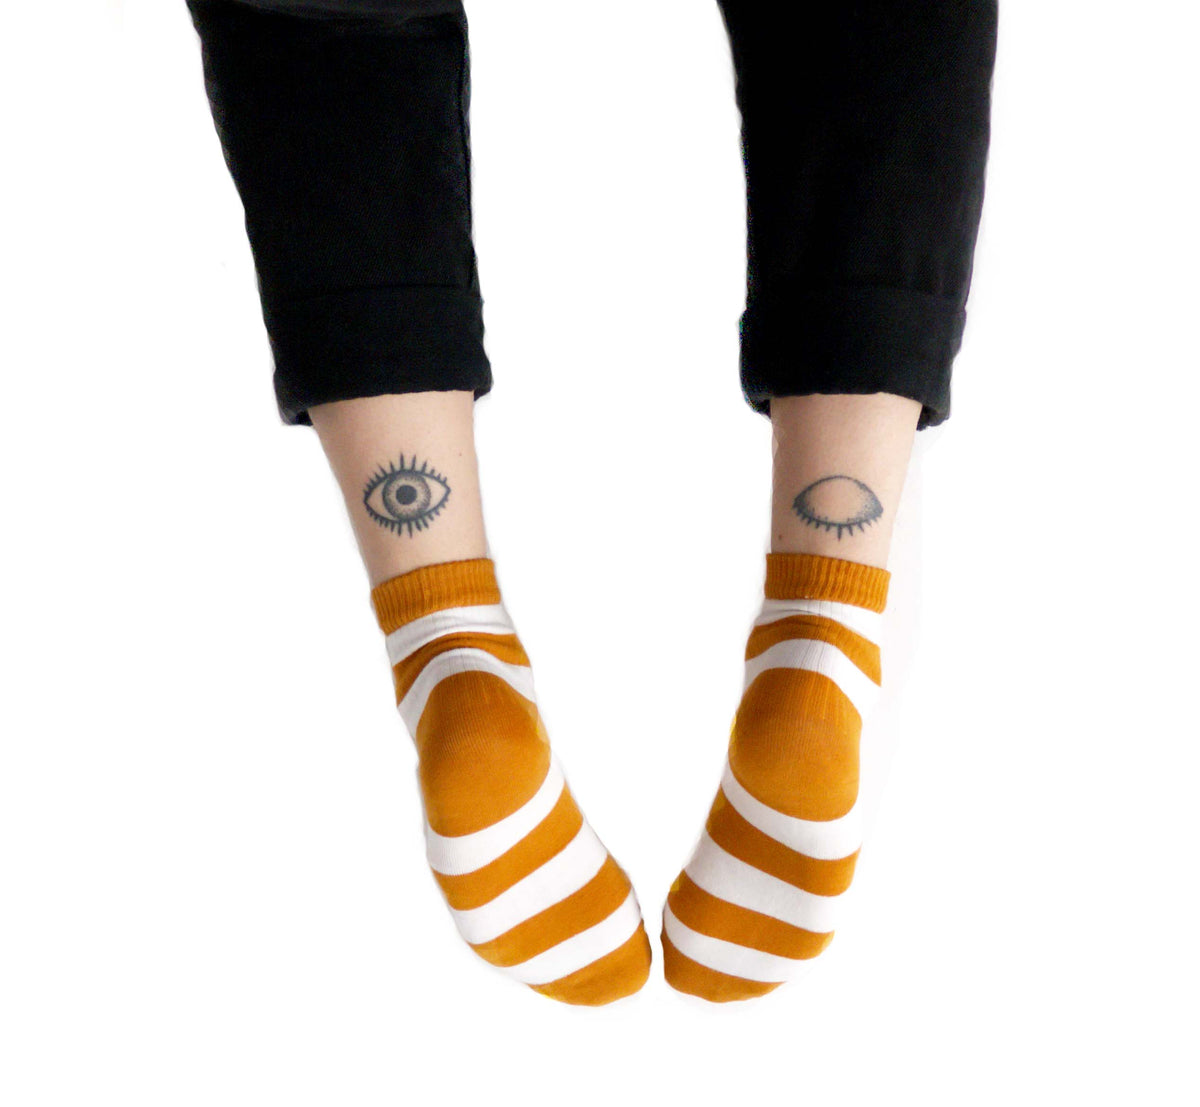 Mustard yellow, colourful striped ankle socks for women